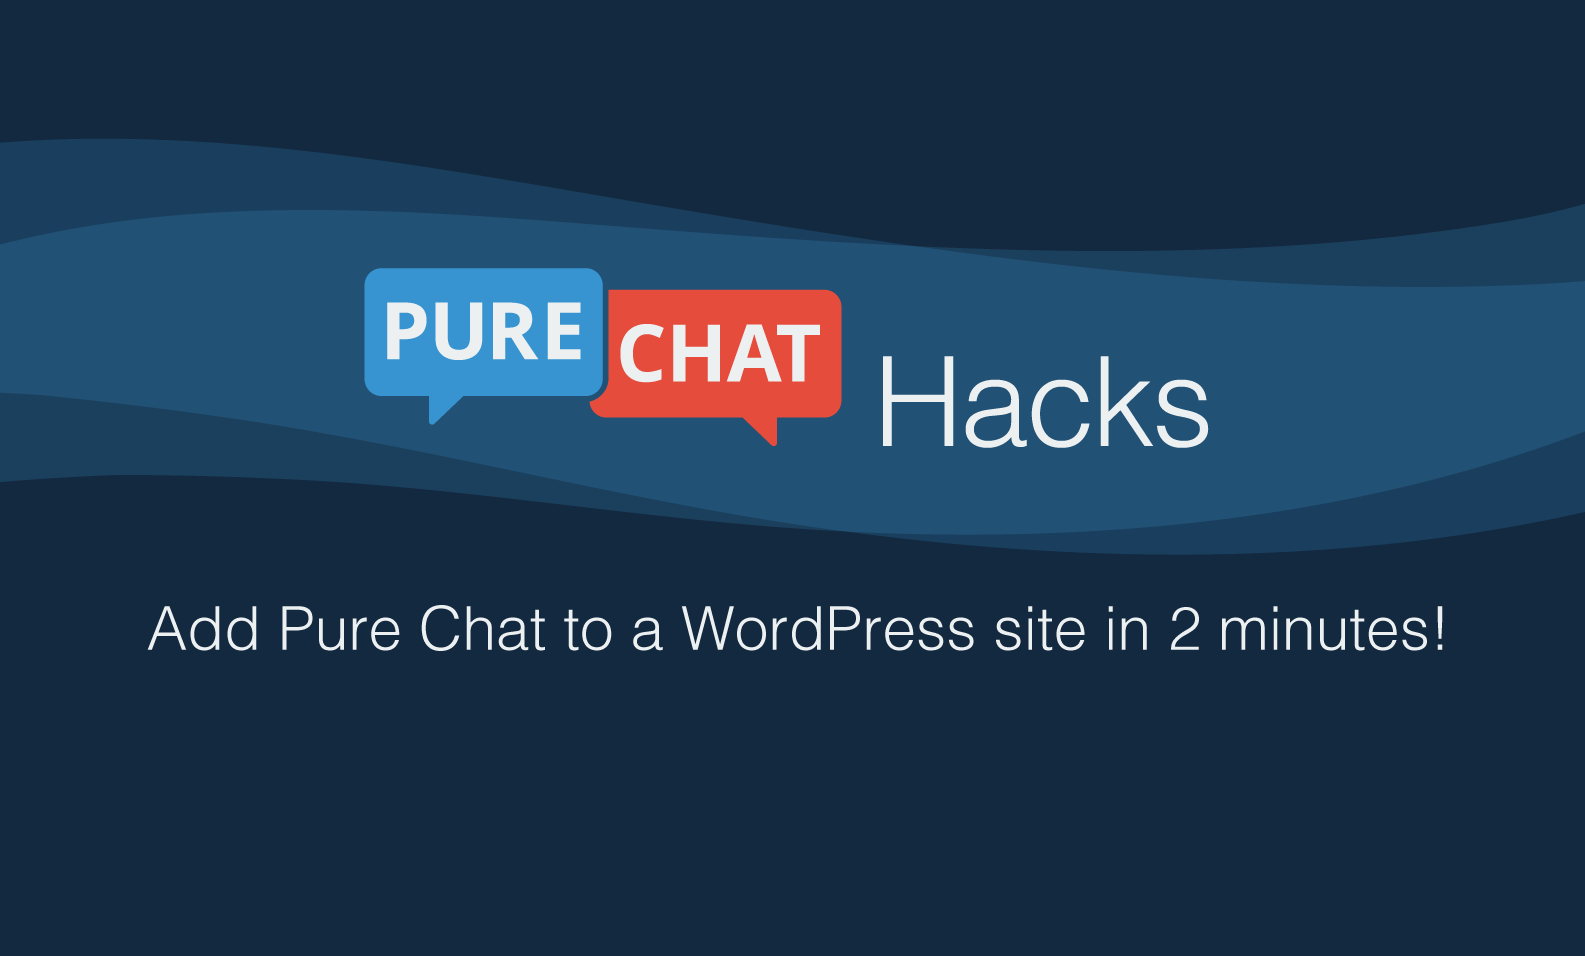 Add Pure Chat to a WordPress site in 2 minutes!